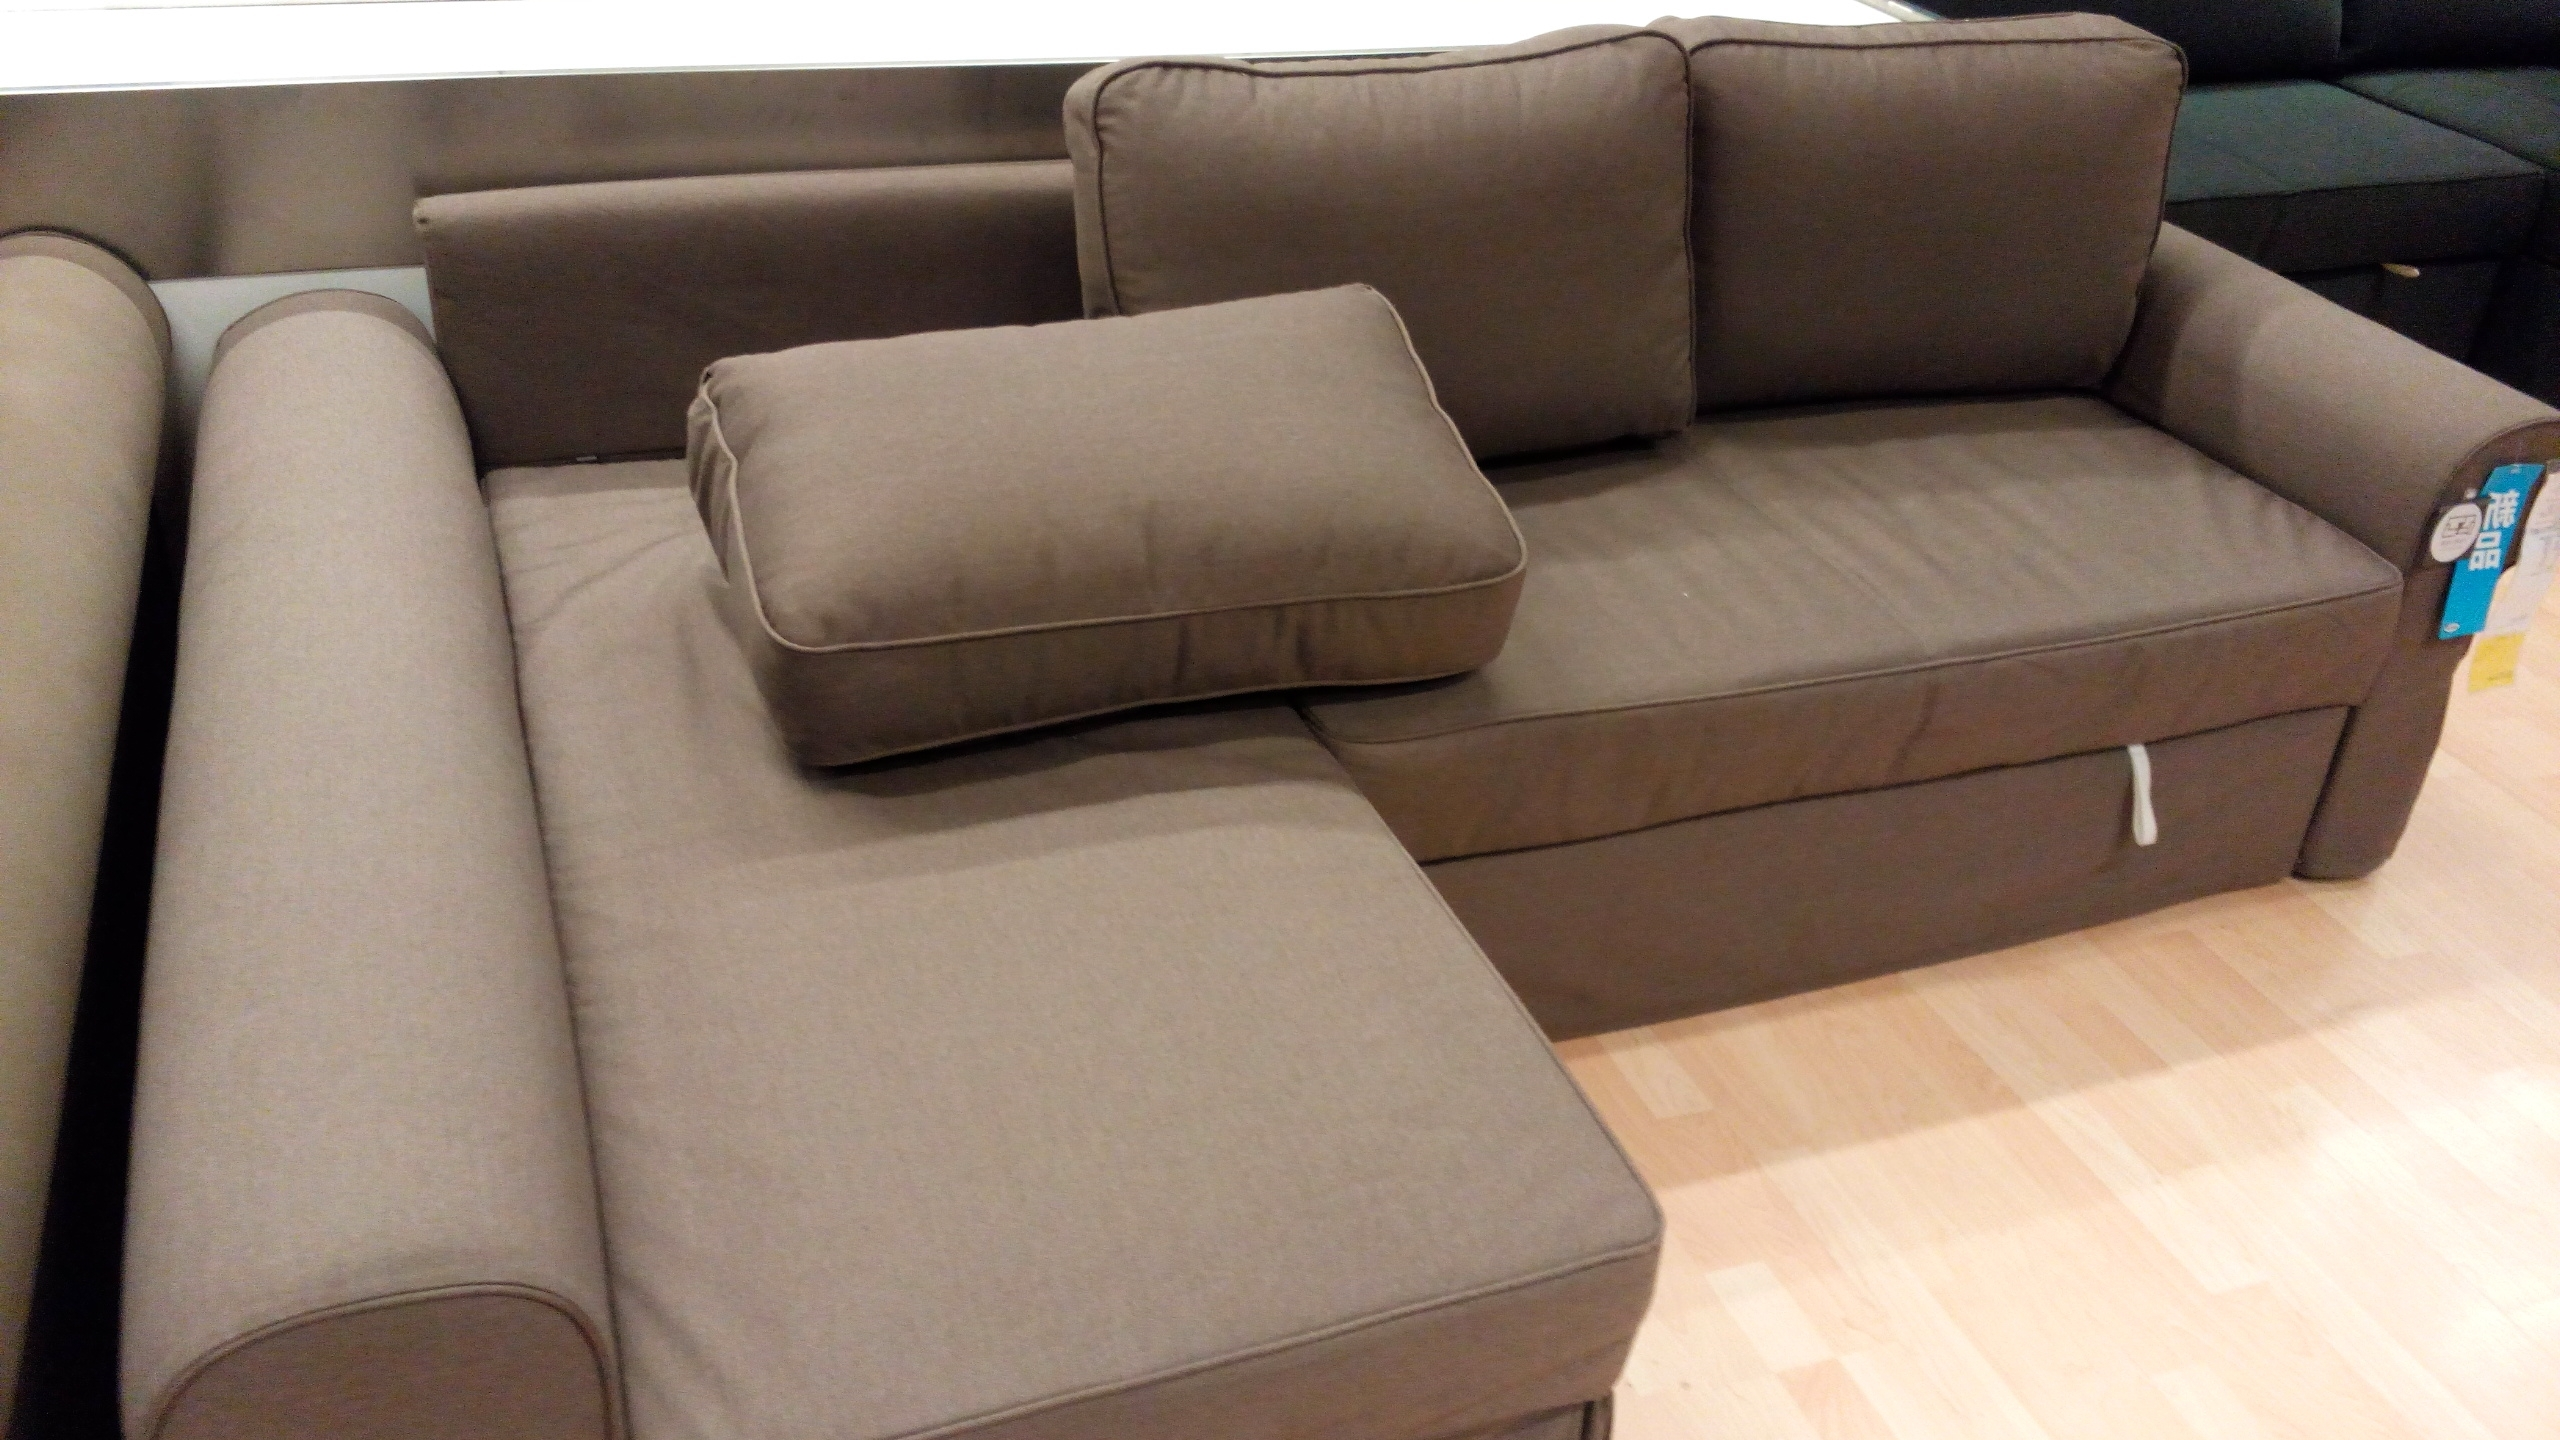 Fashionable Ikea Vilasund And Backabro Review – Return Of The Sofa Bed Clones! With Sofa Beds With Chaise (View 4 of 15)